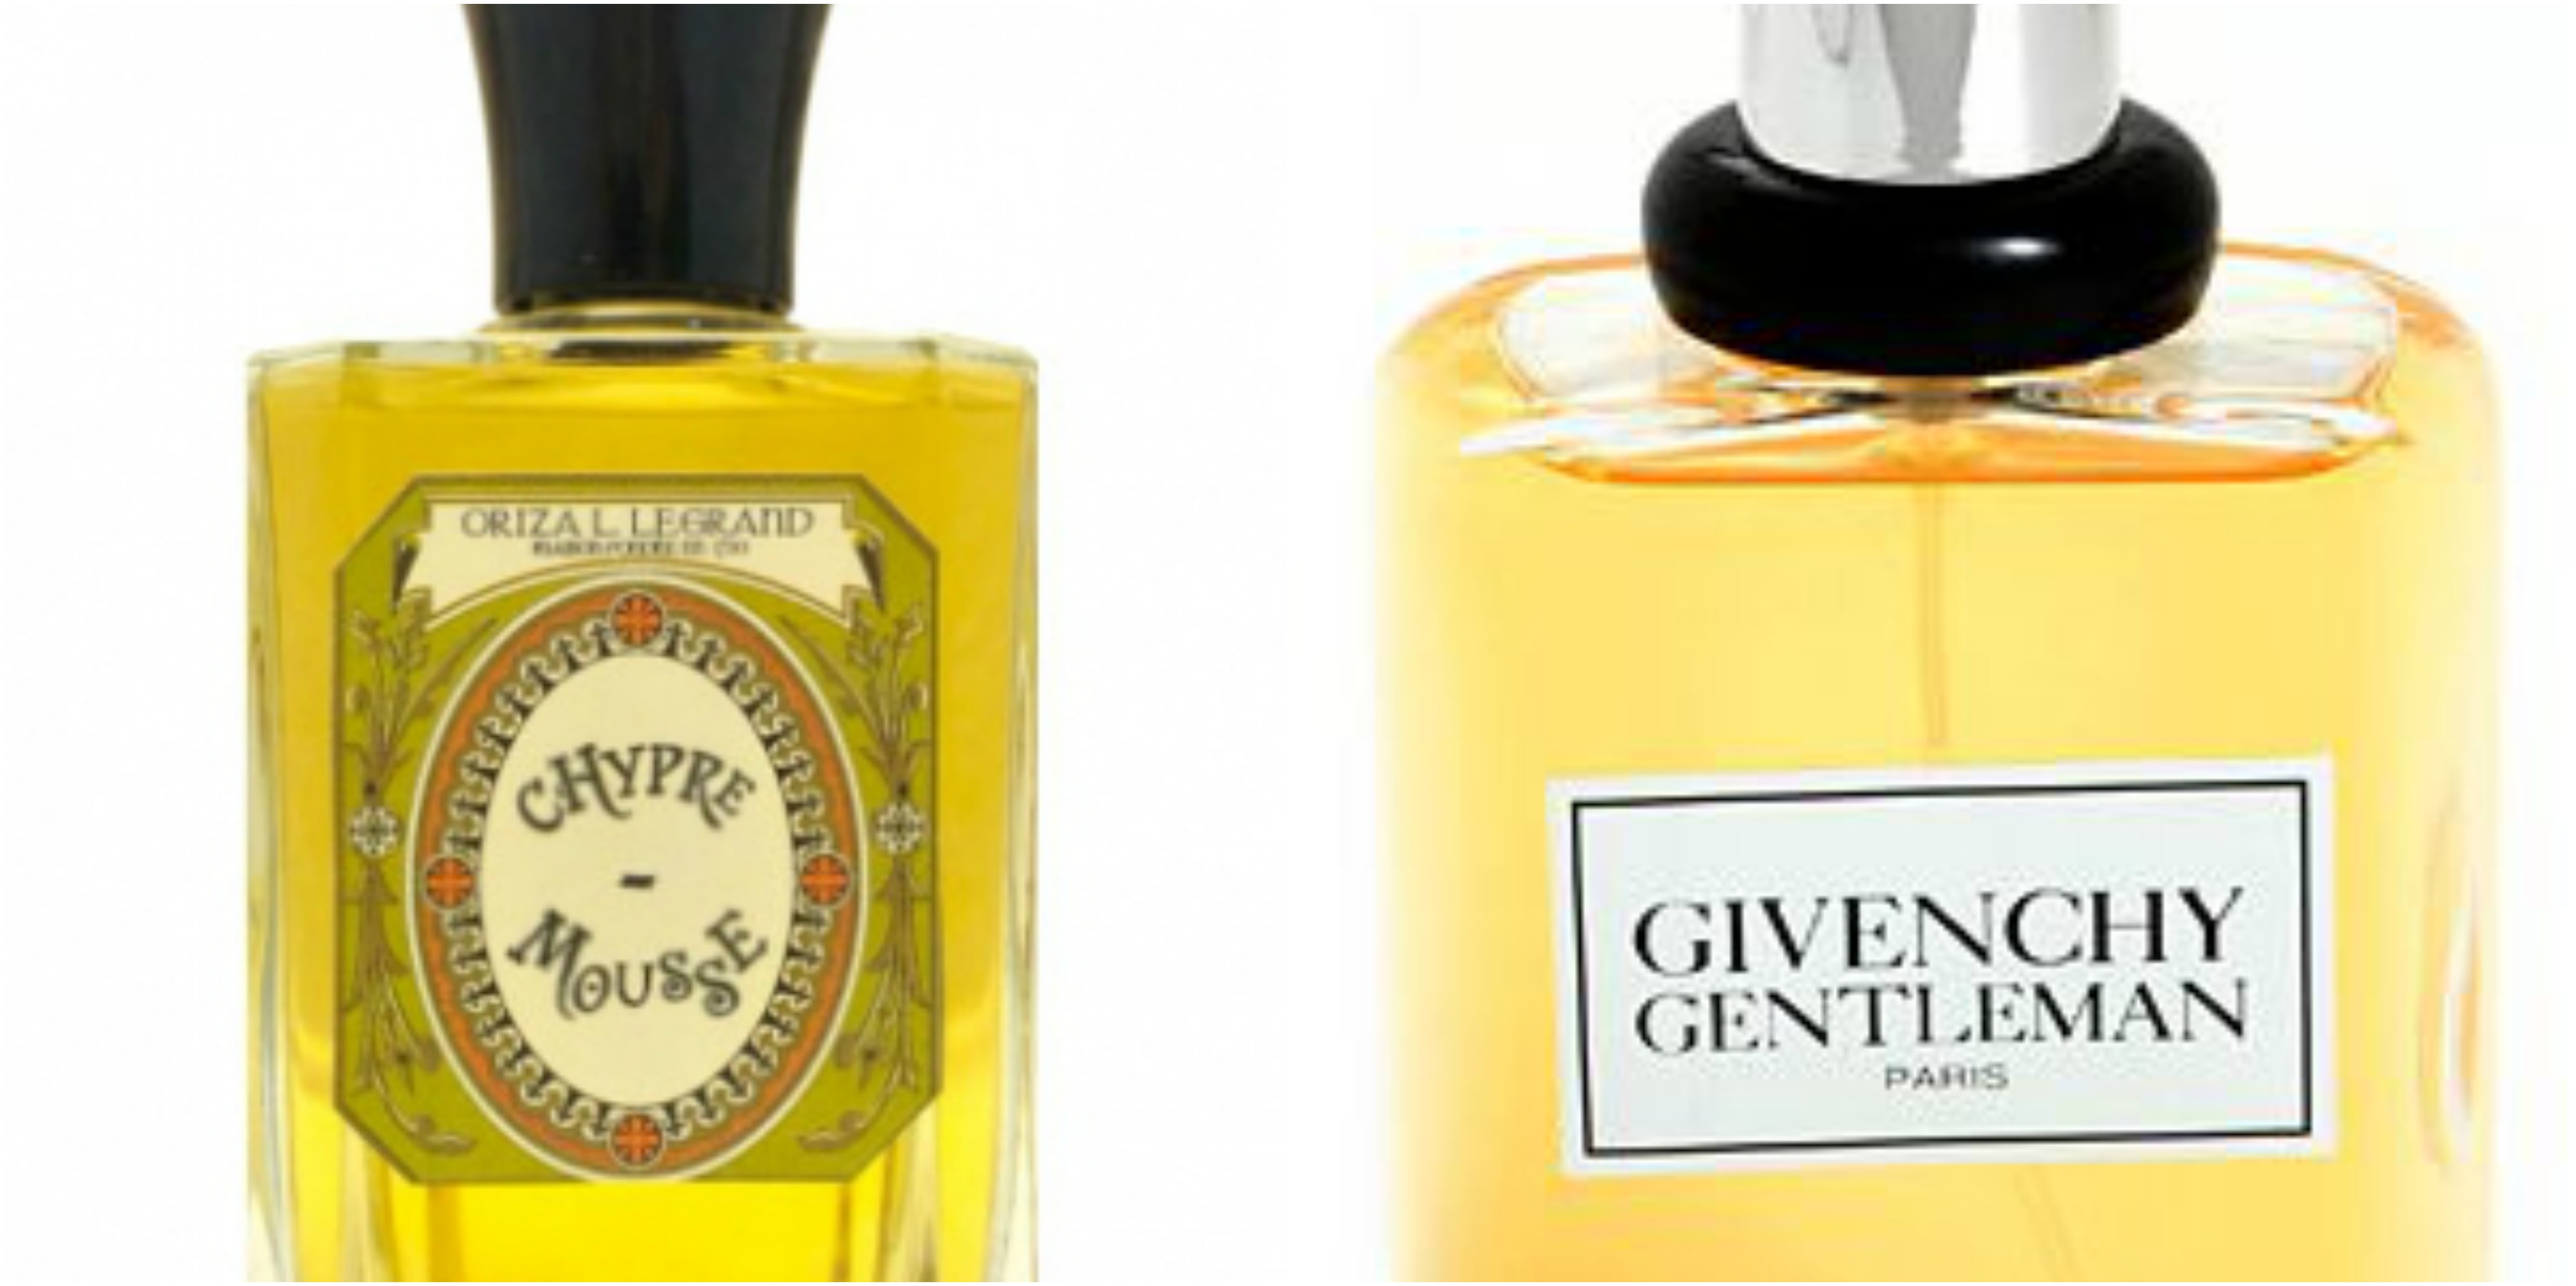 b92ae968b Flacons of Oriza L. Legrand Chypre Mousse and Givenchy Gentleman